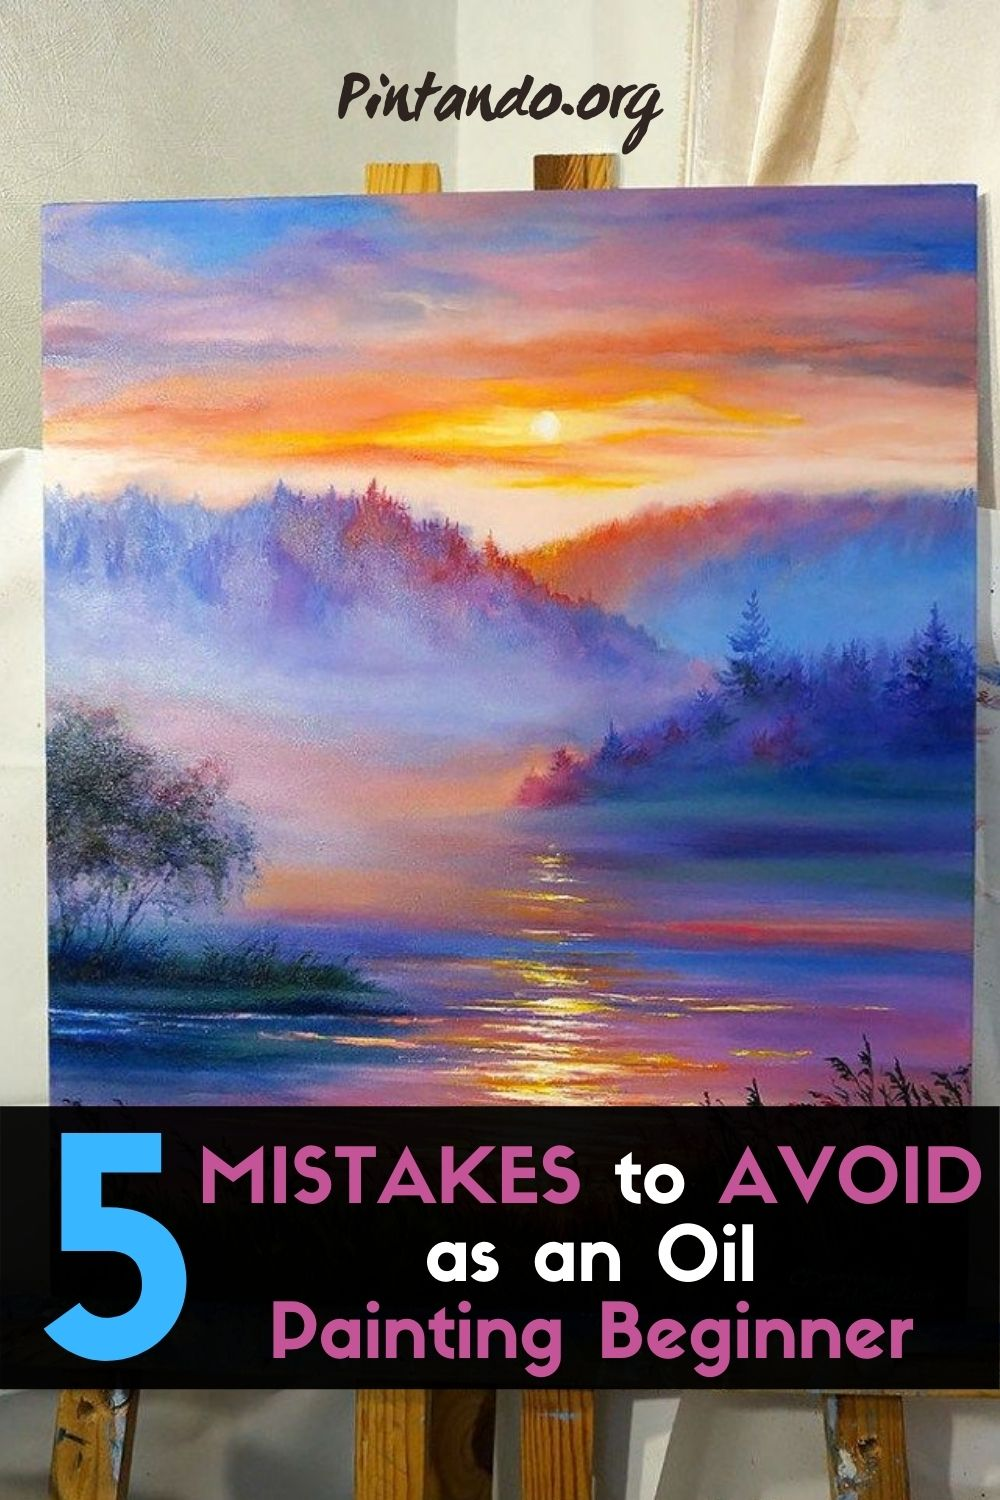 5 MISTAKES to AVOID as an Oil Painting Beginner (1)